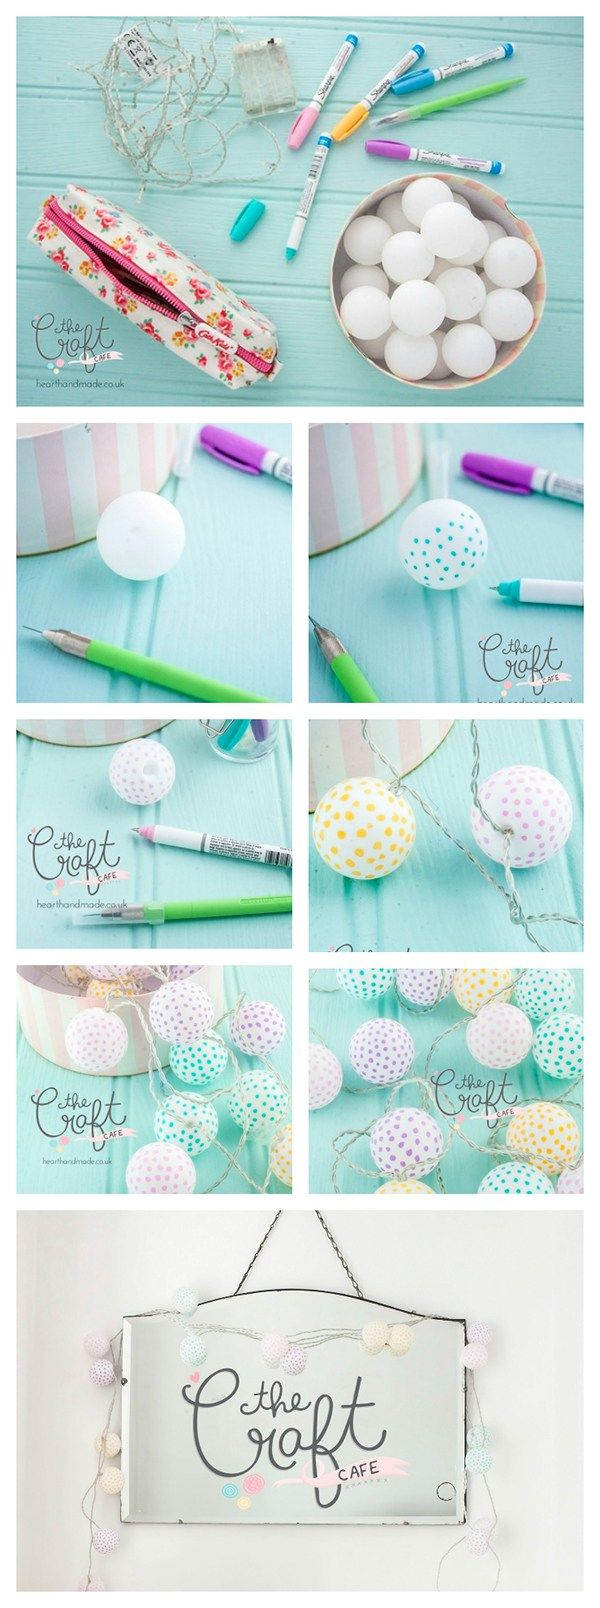 I LOVE this super simple DIY tutorial that shows you how to make polka dot party lights out of ping pong balls and Sharpie pastel paint pens. It's a great project if you love to add a little whimsy to your home decor projects. I always search on Pinterest for the best DIY decor ideas and I love garland style fairy lights. I'm tempted to make some more to decorate a room for a pretty pastel party!